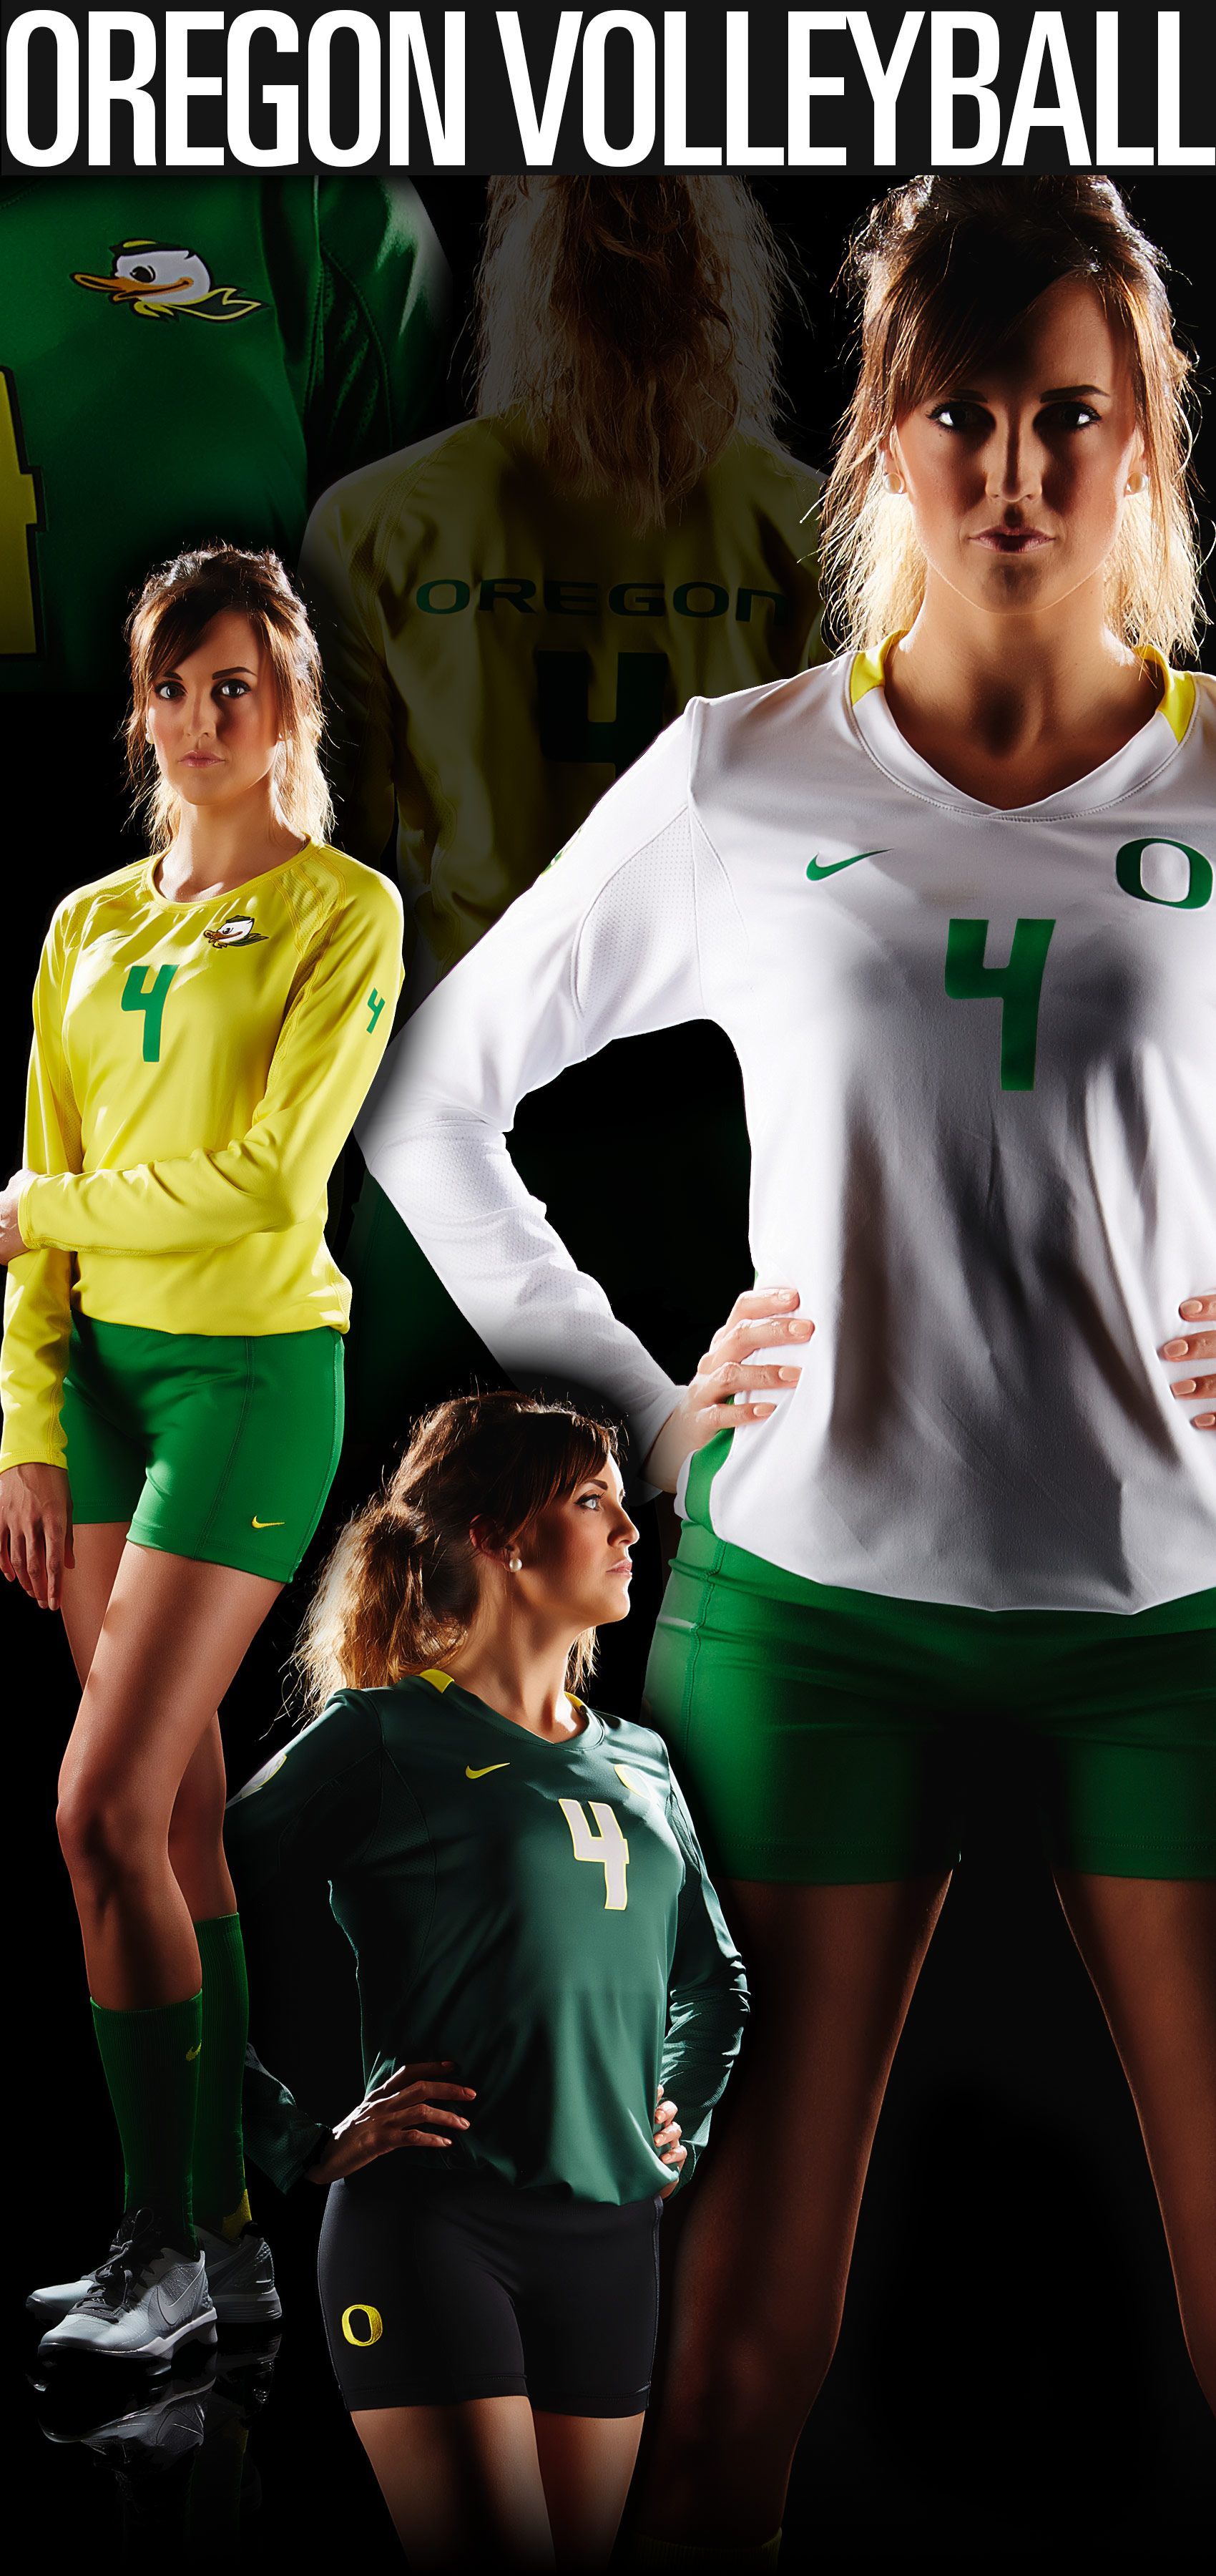 Volleyball Uniforms Volleyball Uniforms Volleyball News Volleyball